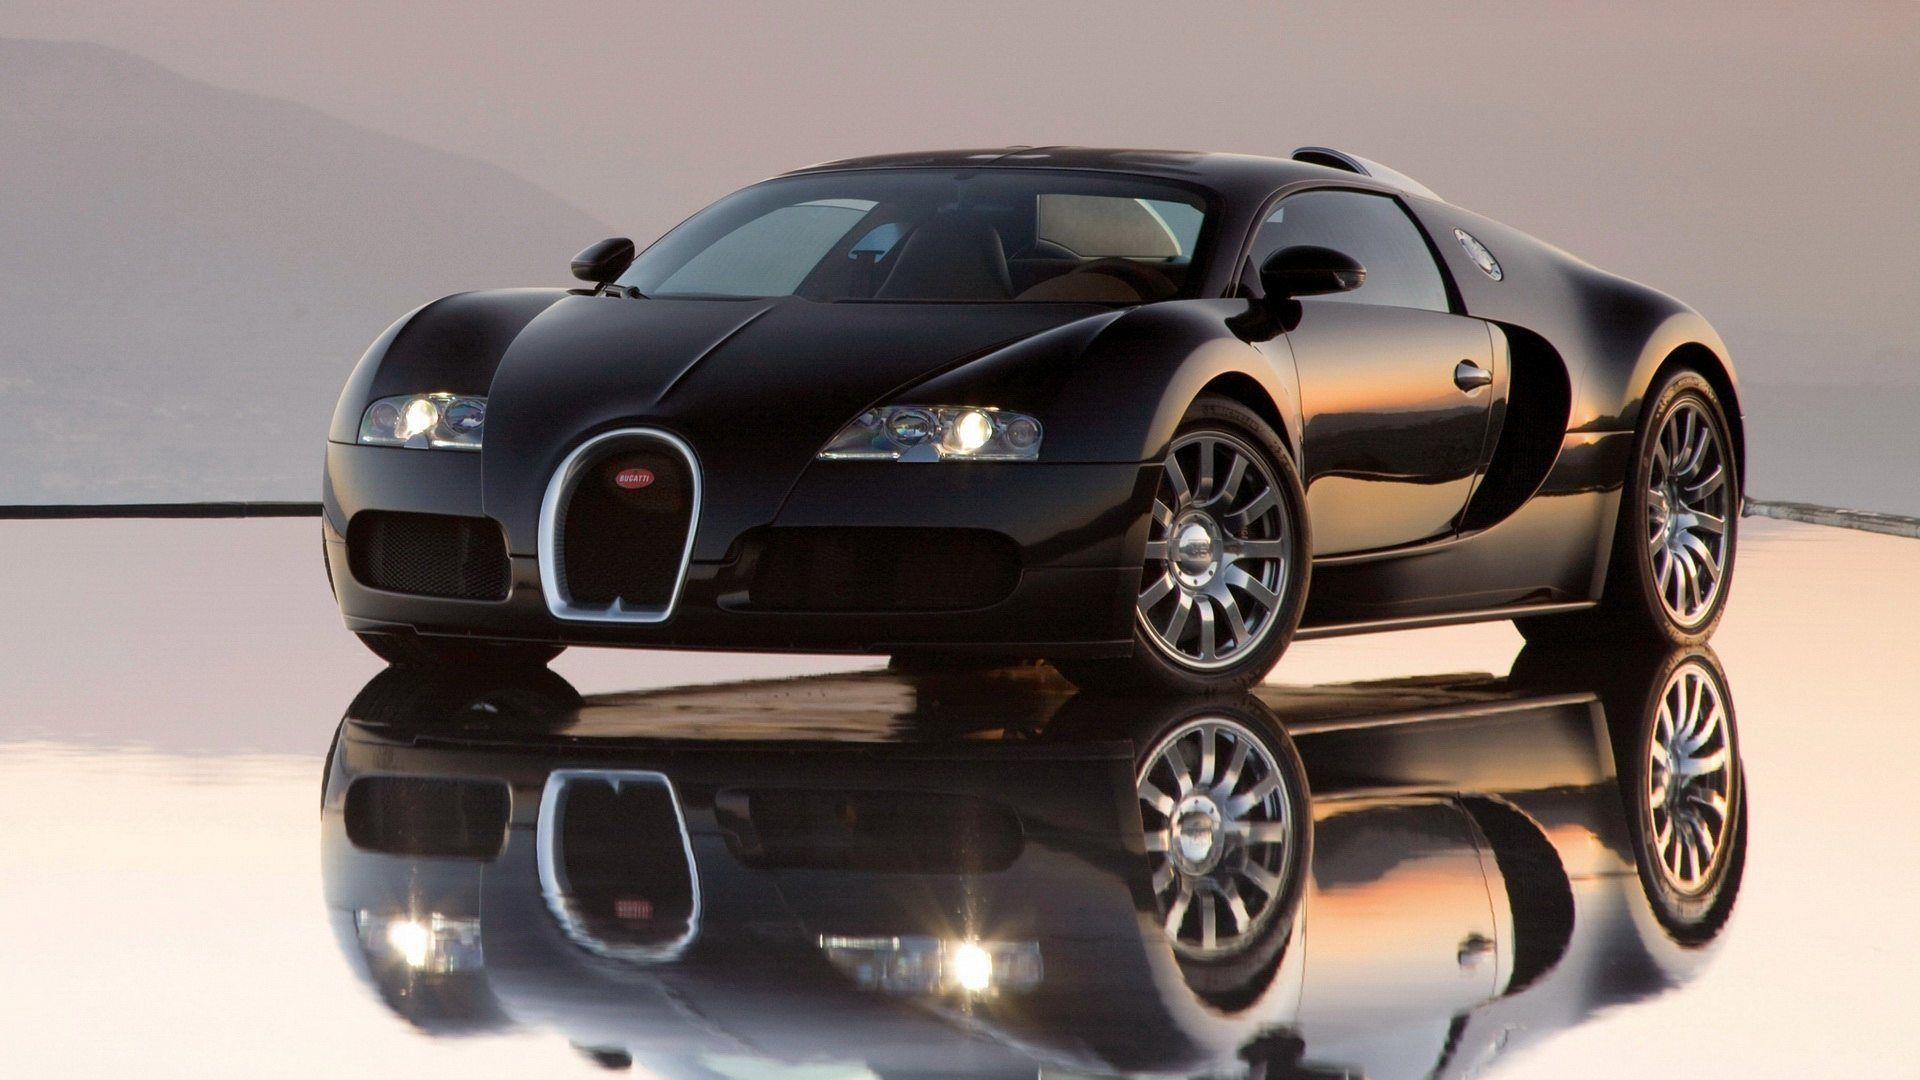 Bugatti Veyron Wallpapers Android Phones Wallpapers